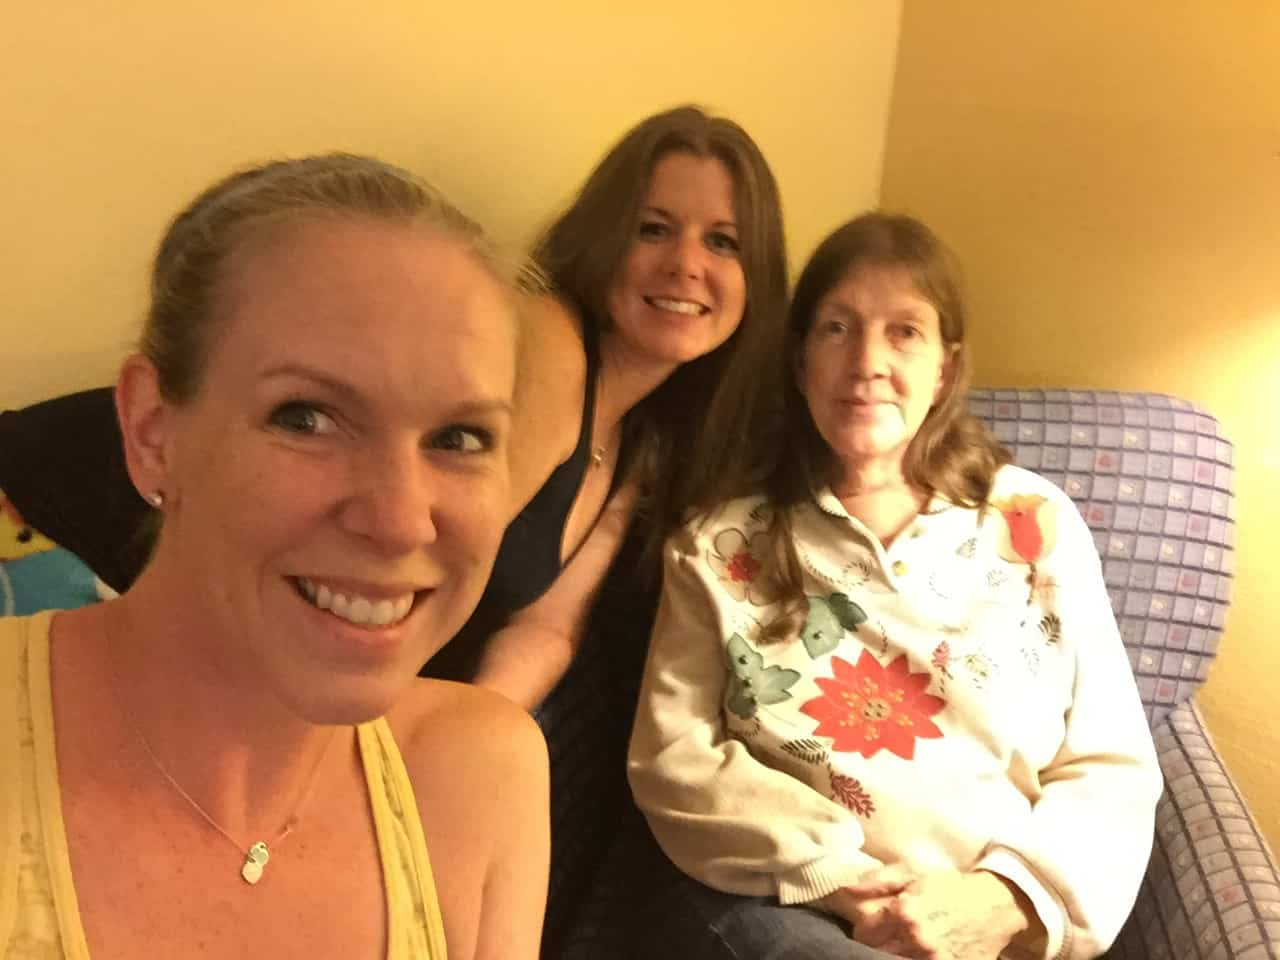 The last picture I took with my mom and sister, October 2015